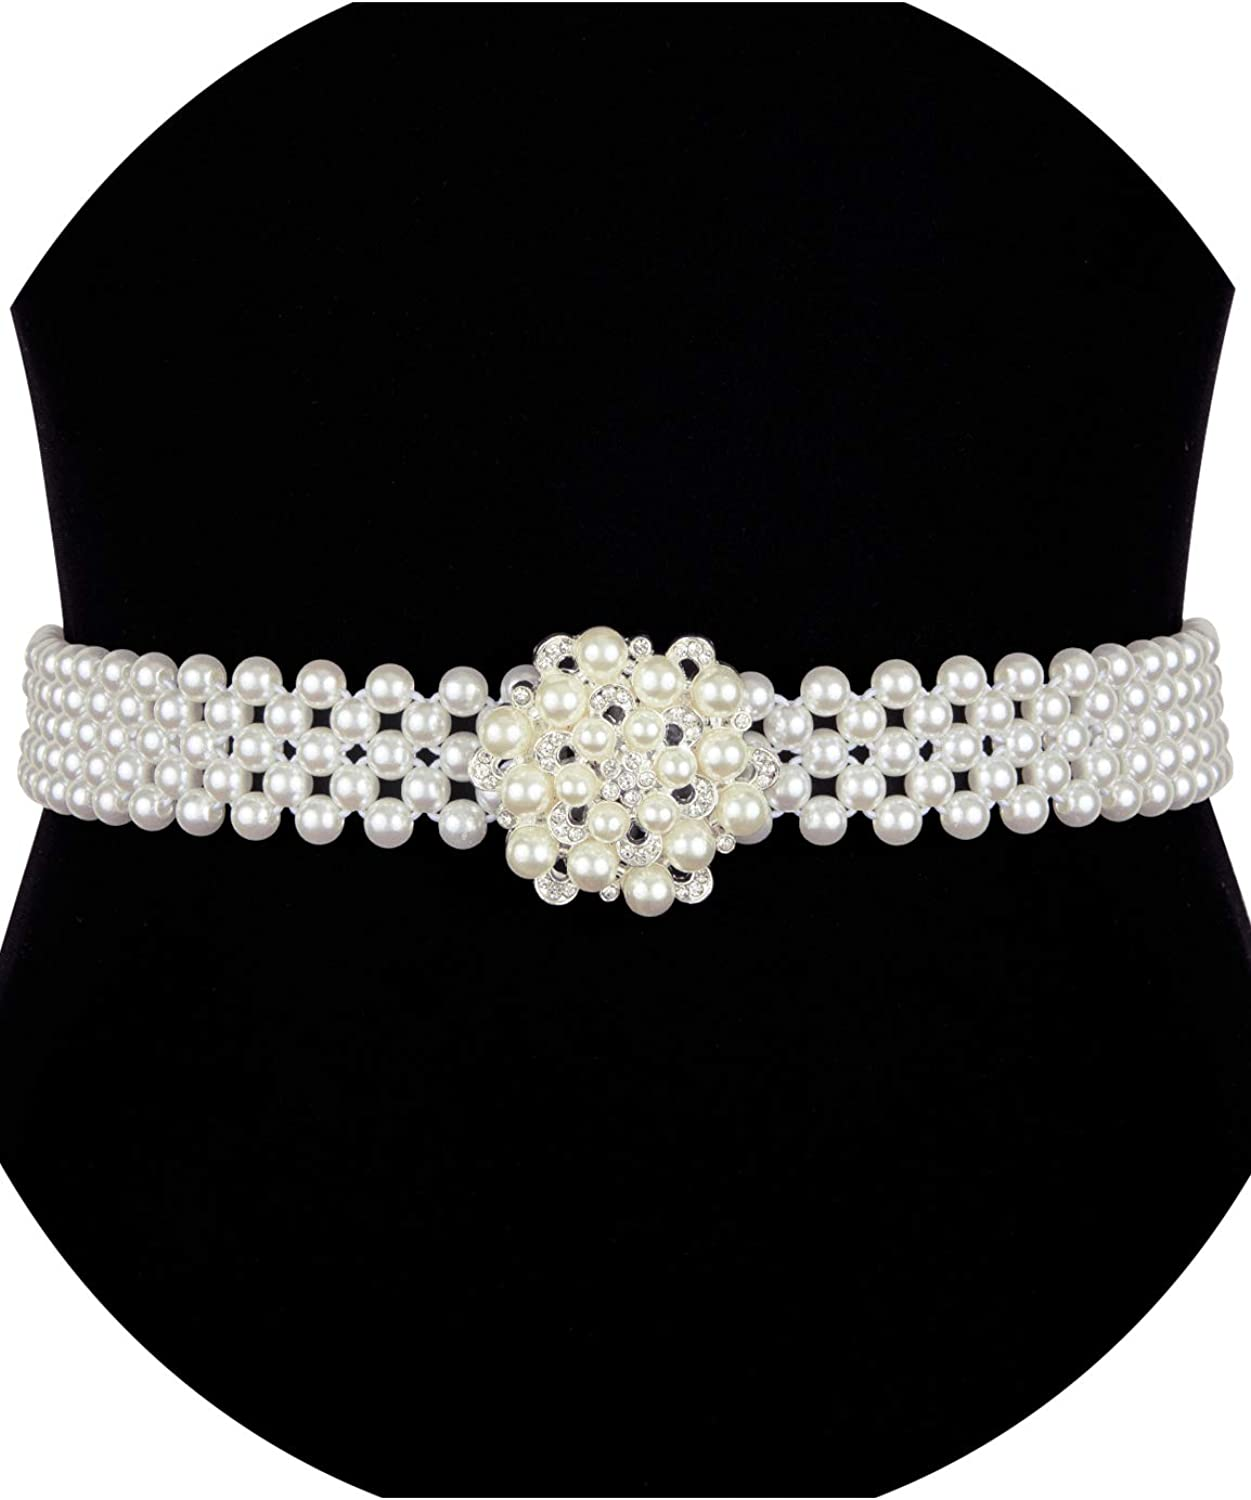 Women Waist Belt Pearl Diamond Elastic Buckle Dress Belt Fashion Wedding Party